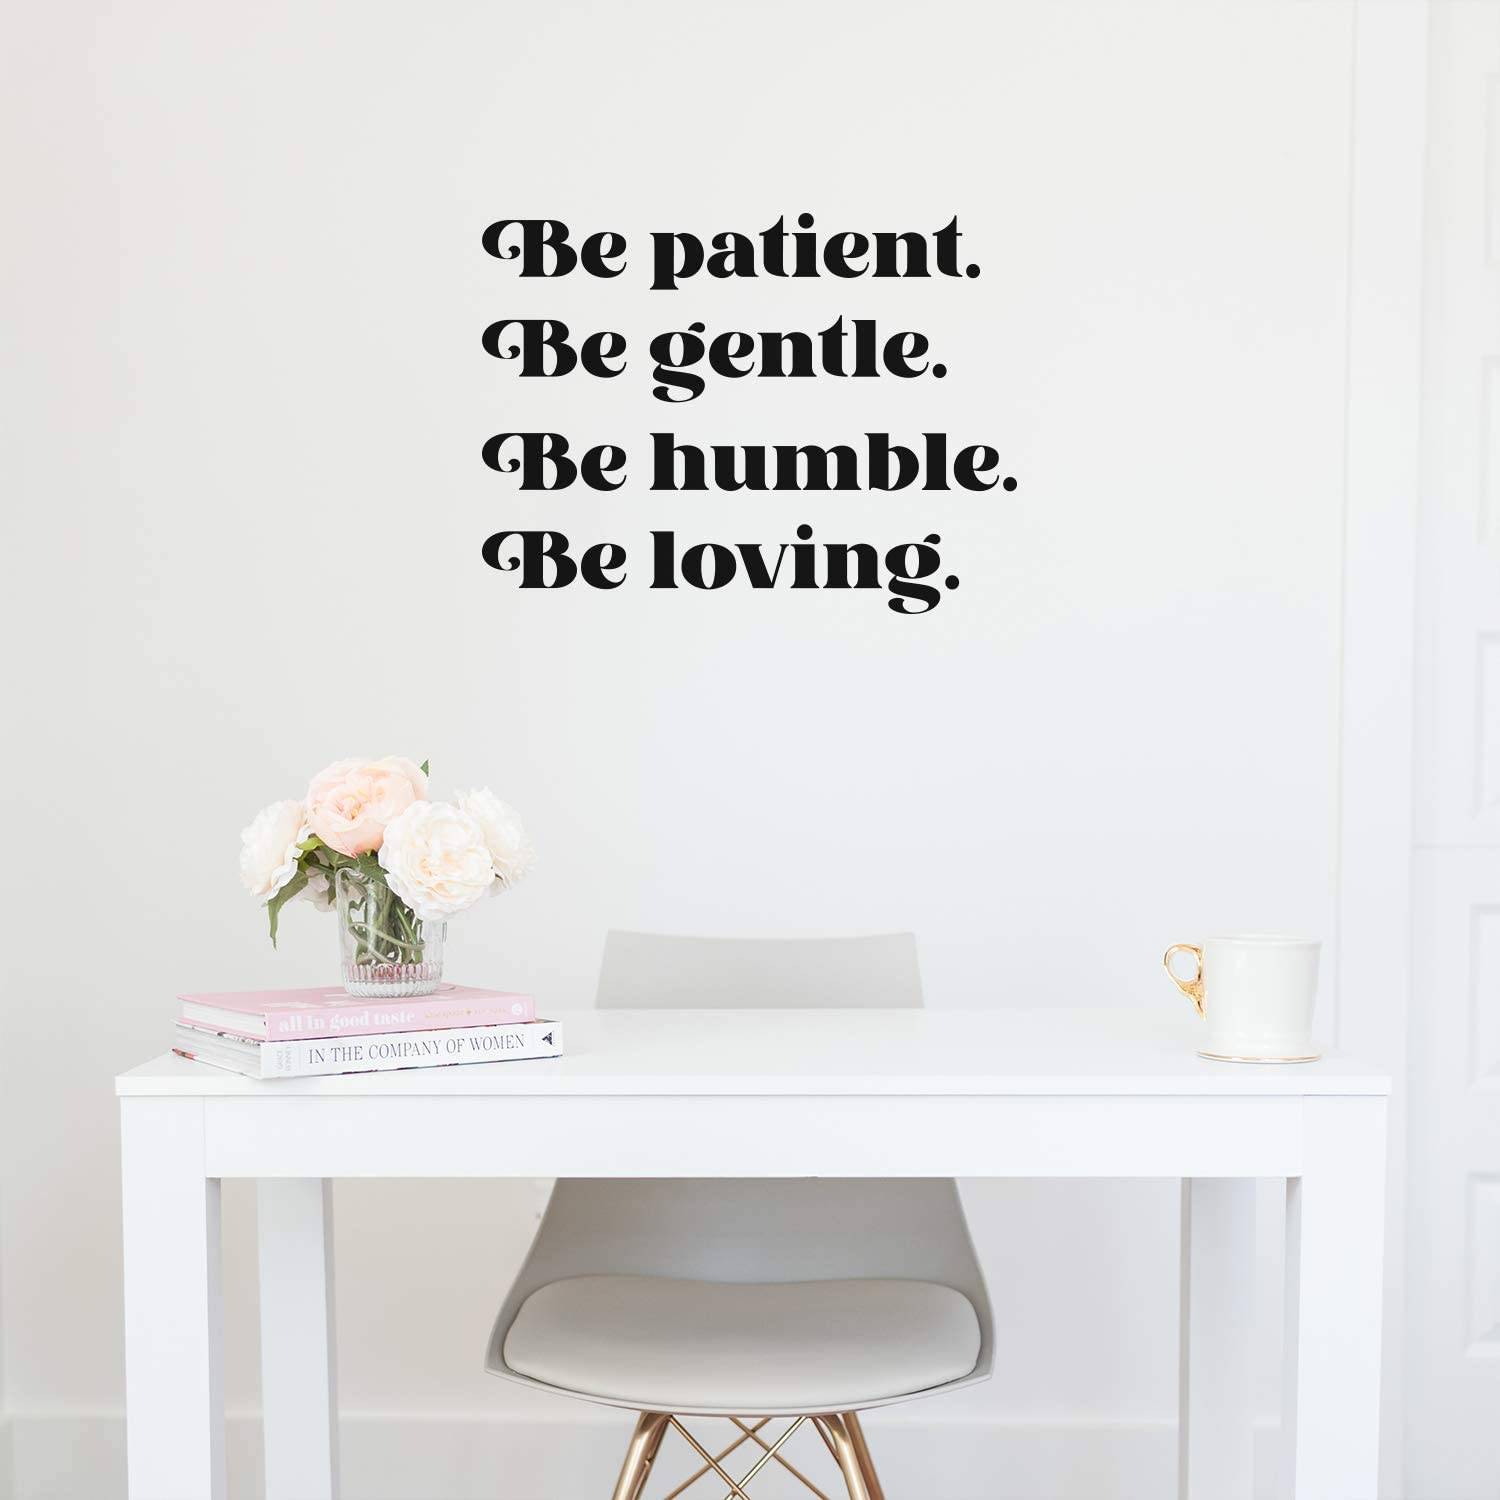 Vinyl Wall Art Decal - Be Patient Be Gentle Be Humble - 22